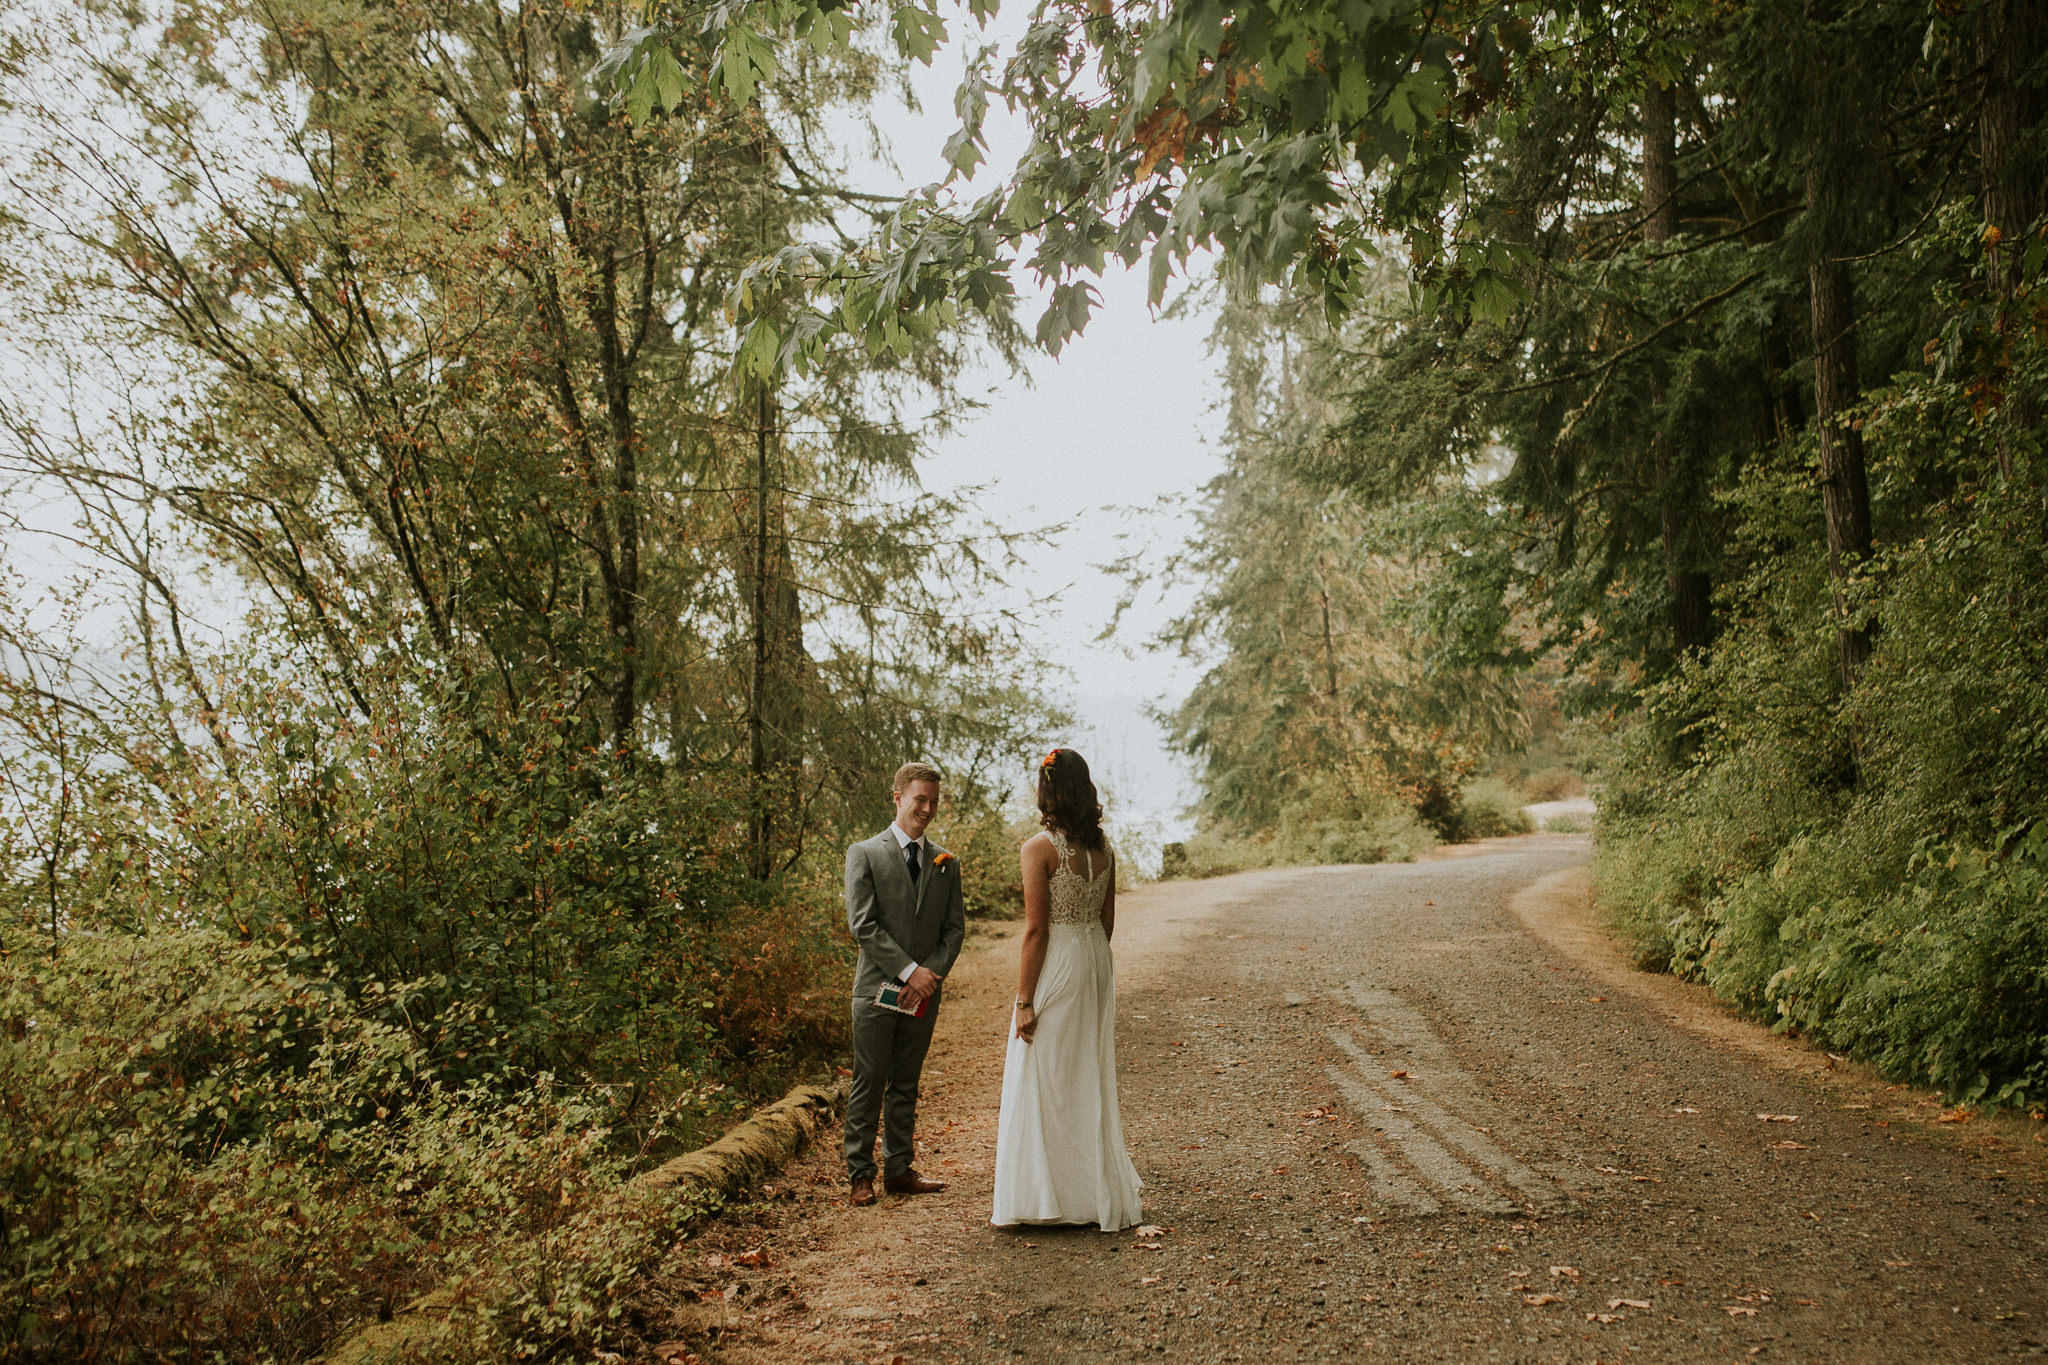 Port-Orchard-Manchester-Park-elopement-Bride-And-Groom-9.jpg